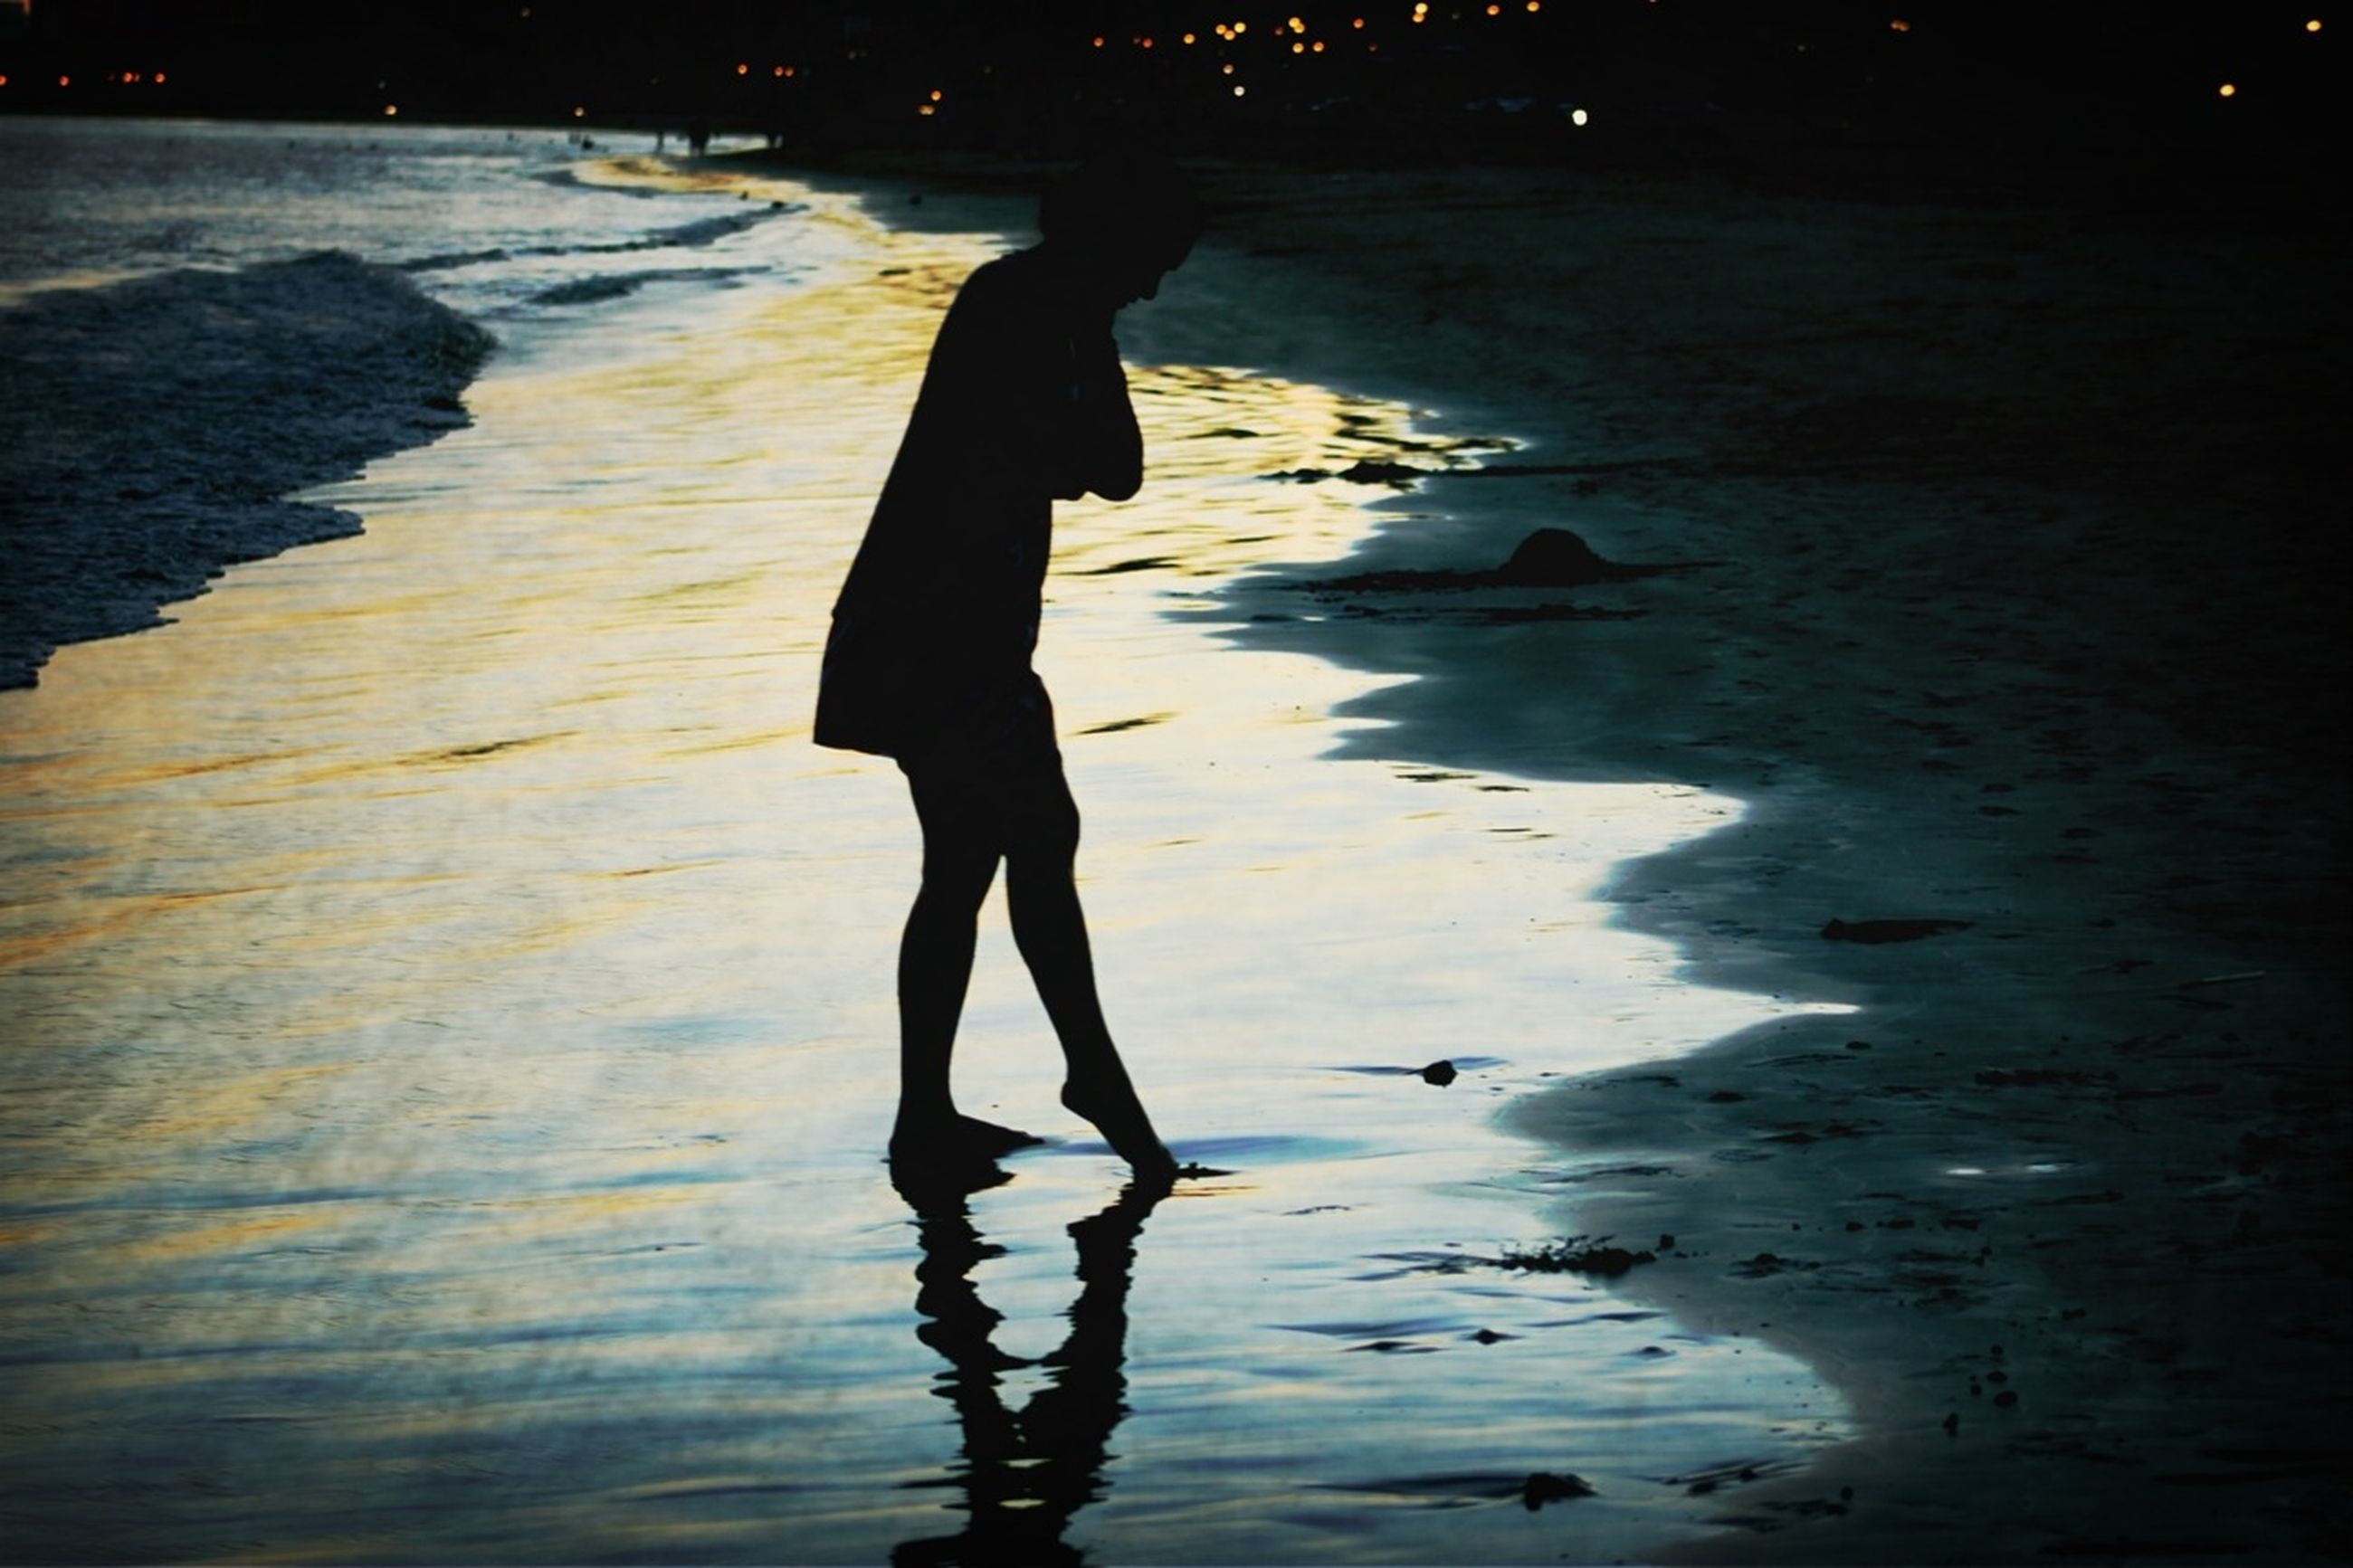 silhouette, water, beach, lifestyles, standing, reflection, leisure activity, shore, shadow, walking, men, full length, sand, sunlight, sea, nature, night, outdoors